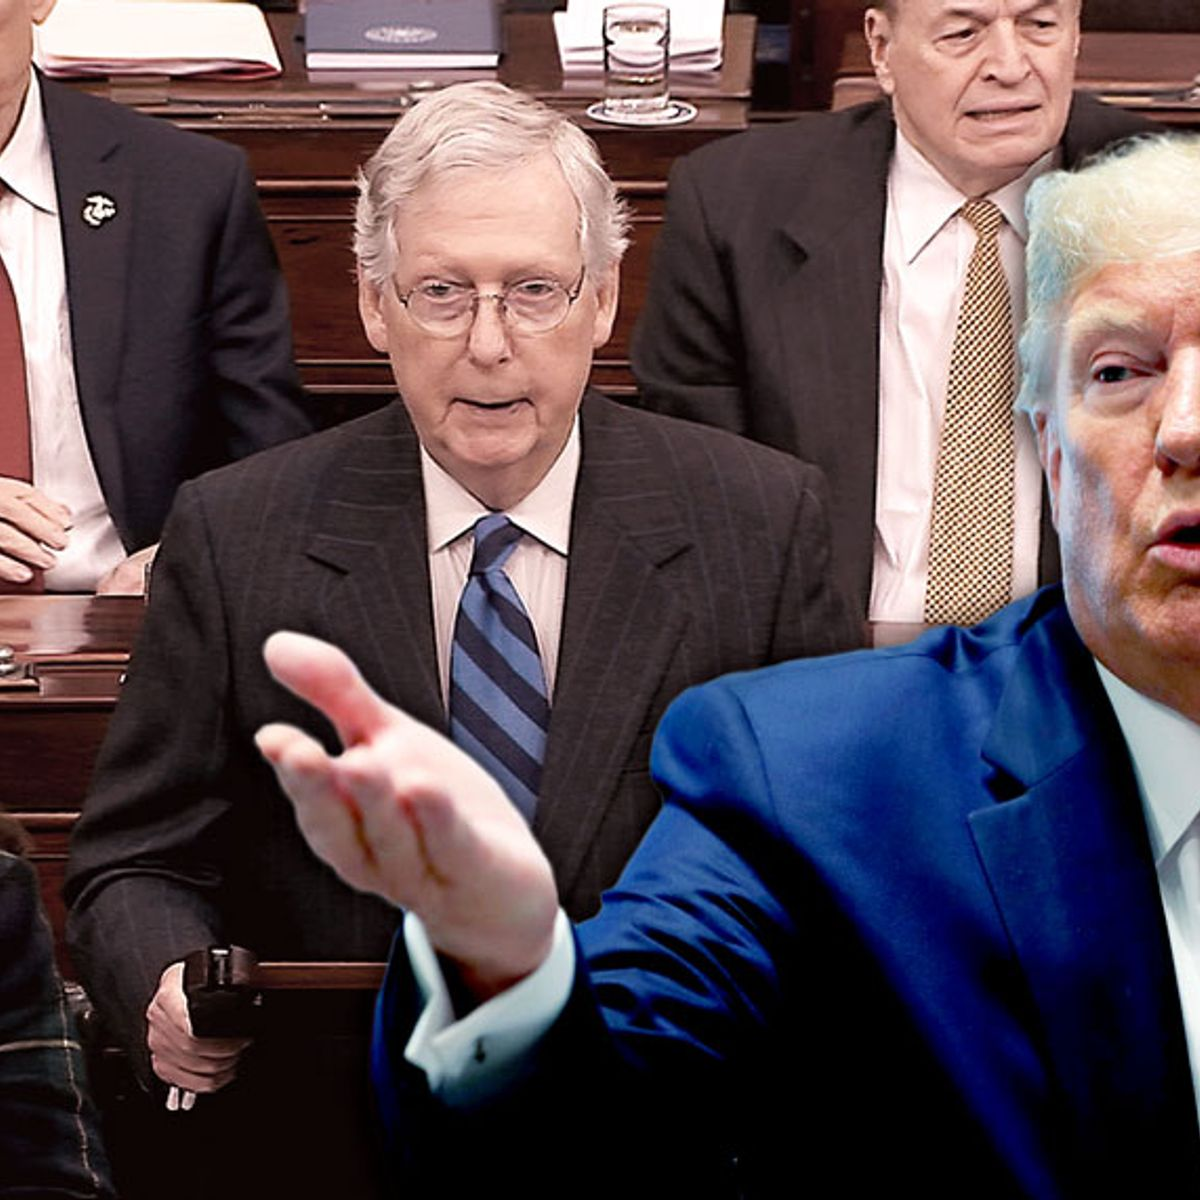 Trump's final impeachment strategy: Throw Mitch McConnell under the bus